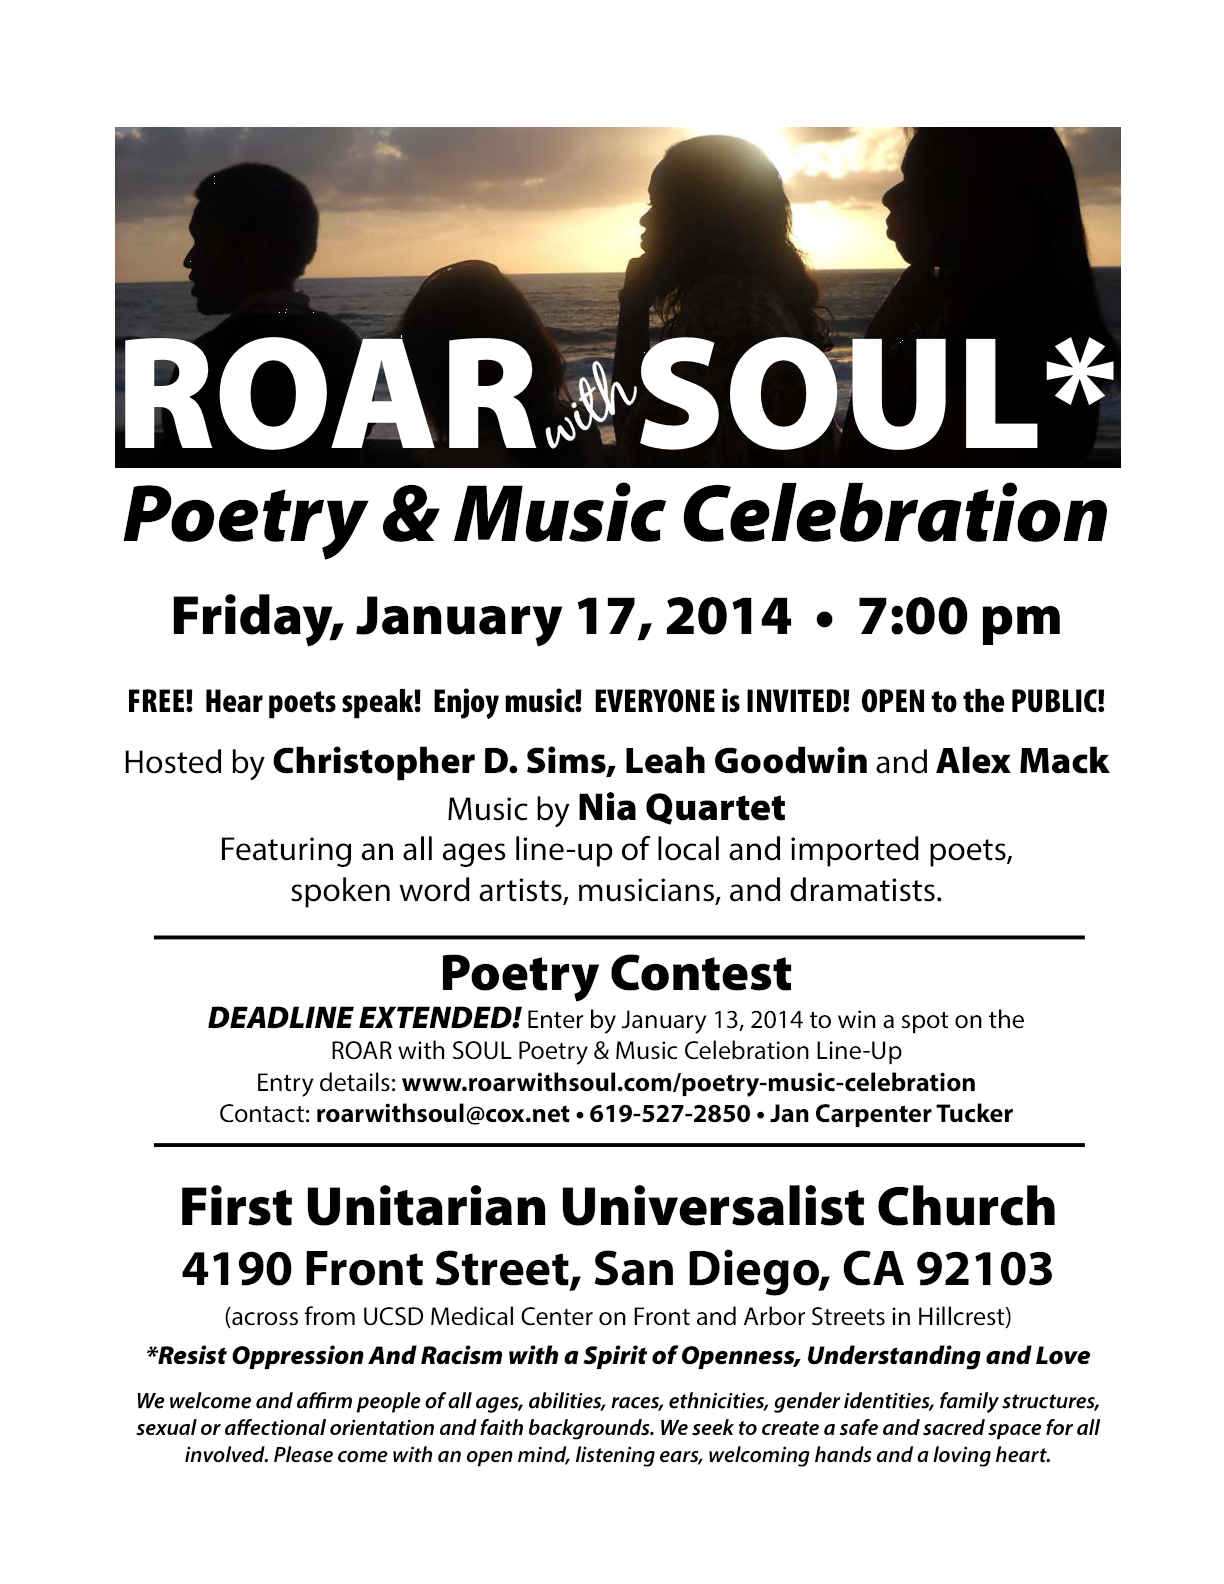 flyer for poet event at DRUUMM West Coast 2014